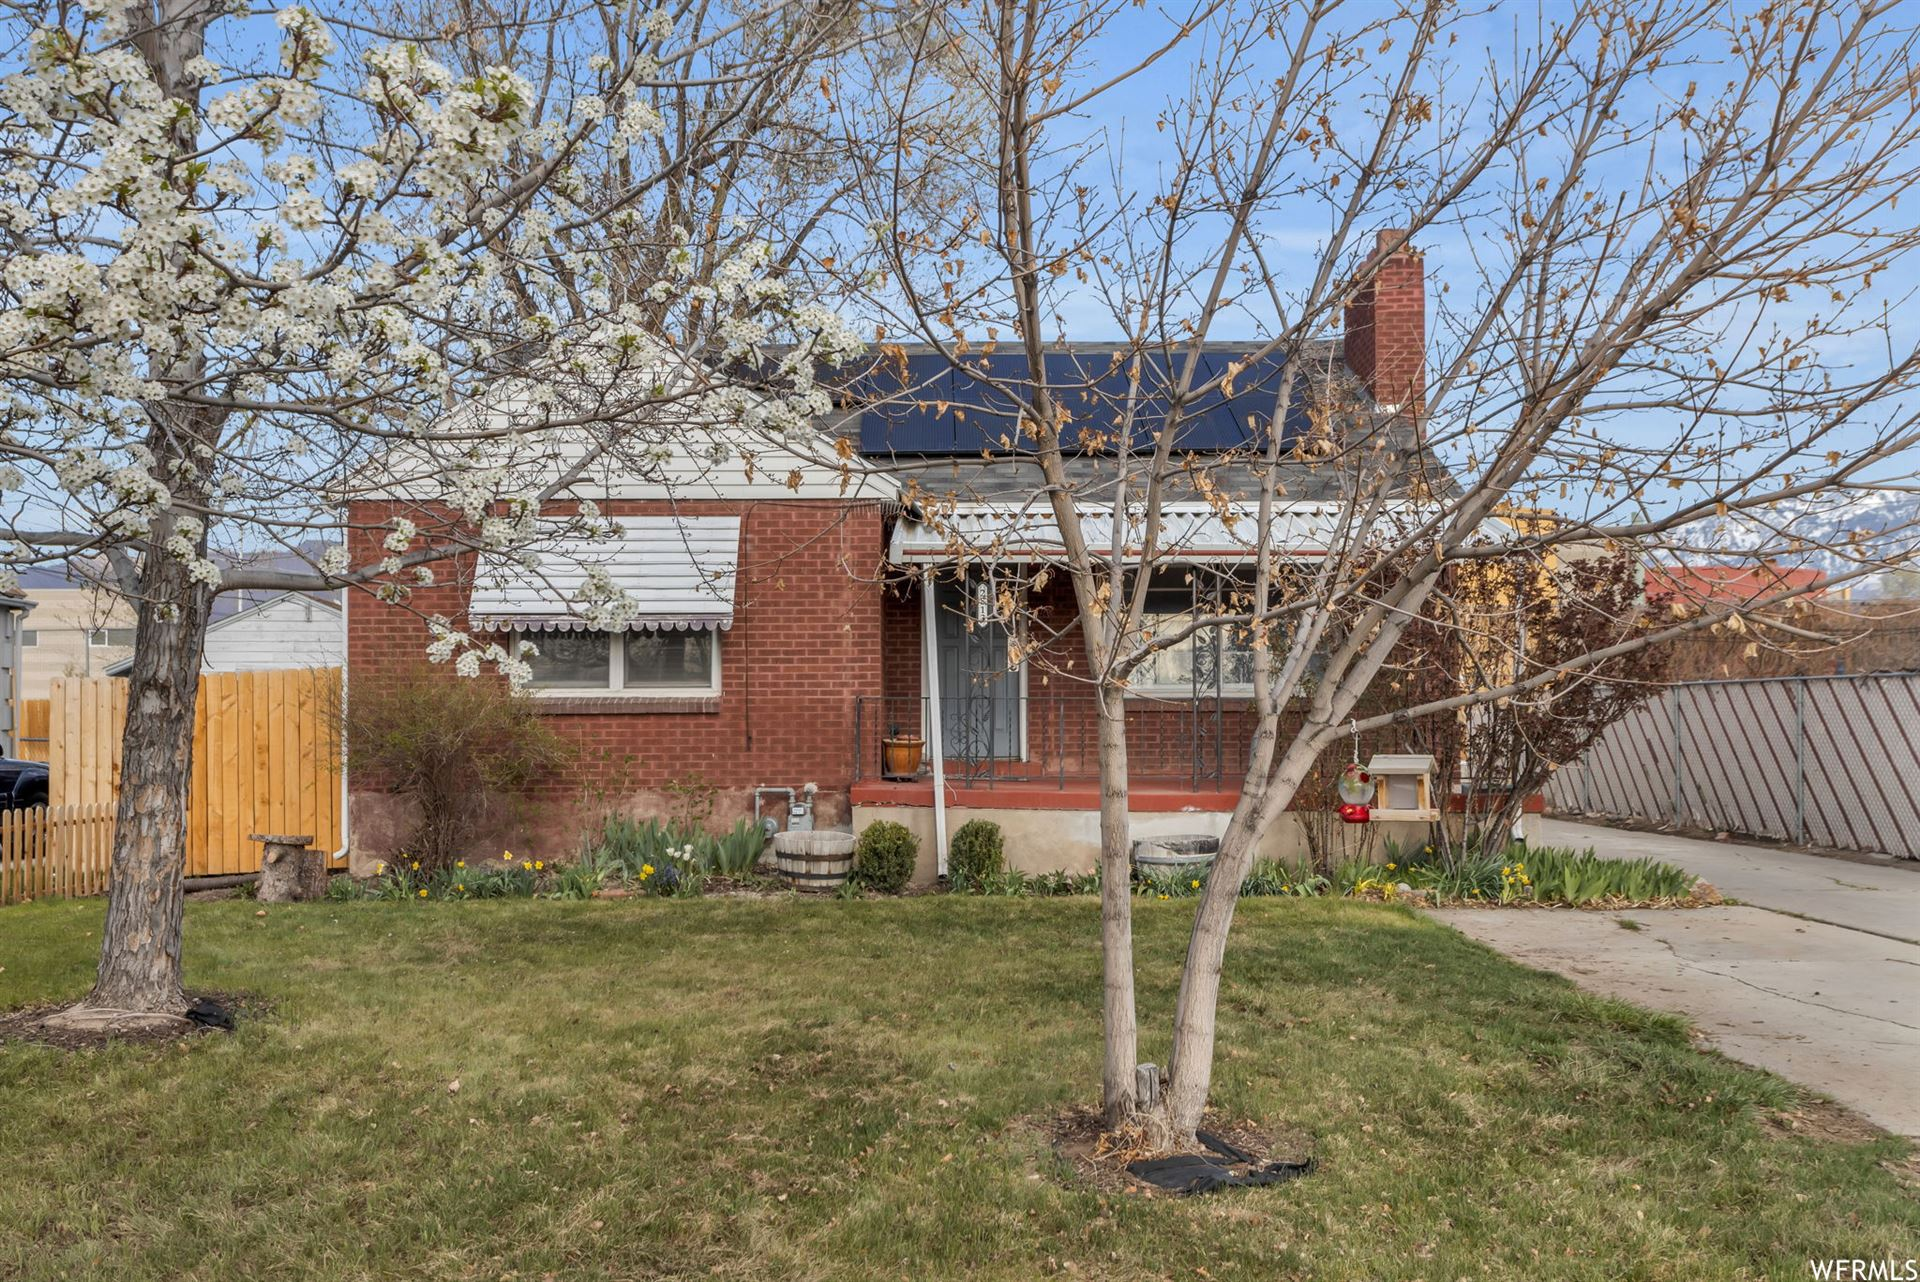 Photo of 2813 S 800 E, Salt Lake City, UT 84106 (MLS # 1734491)